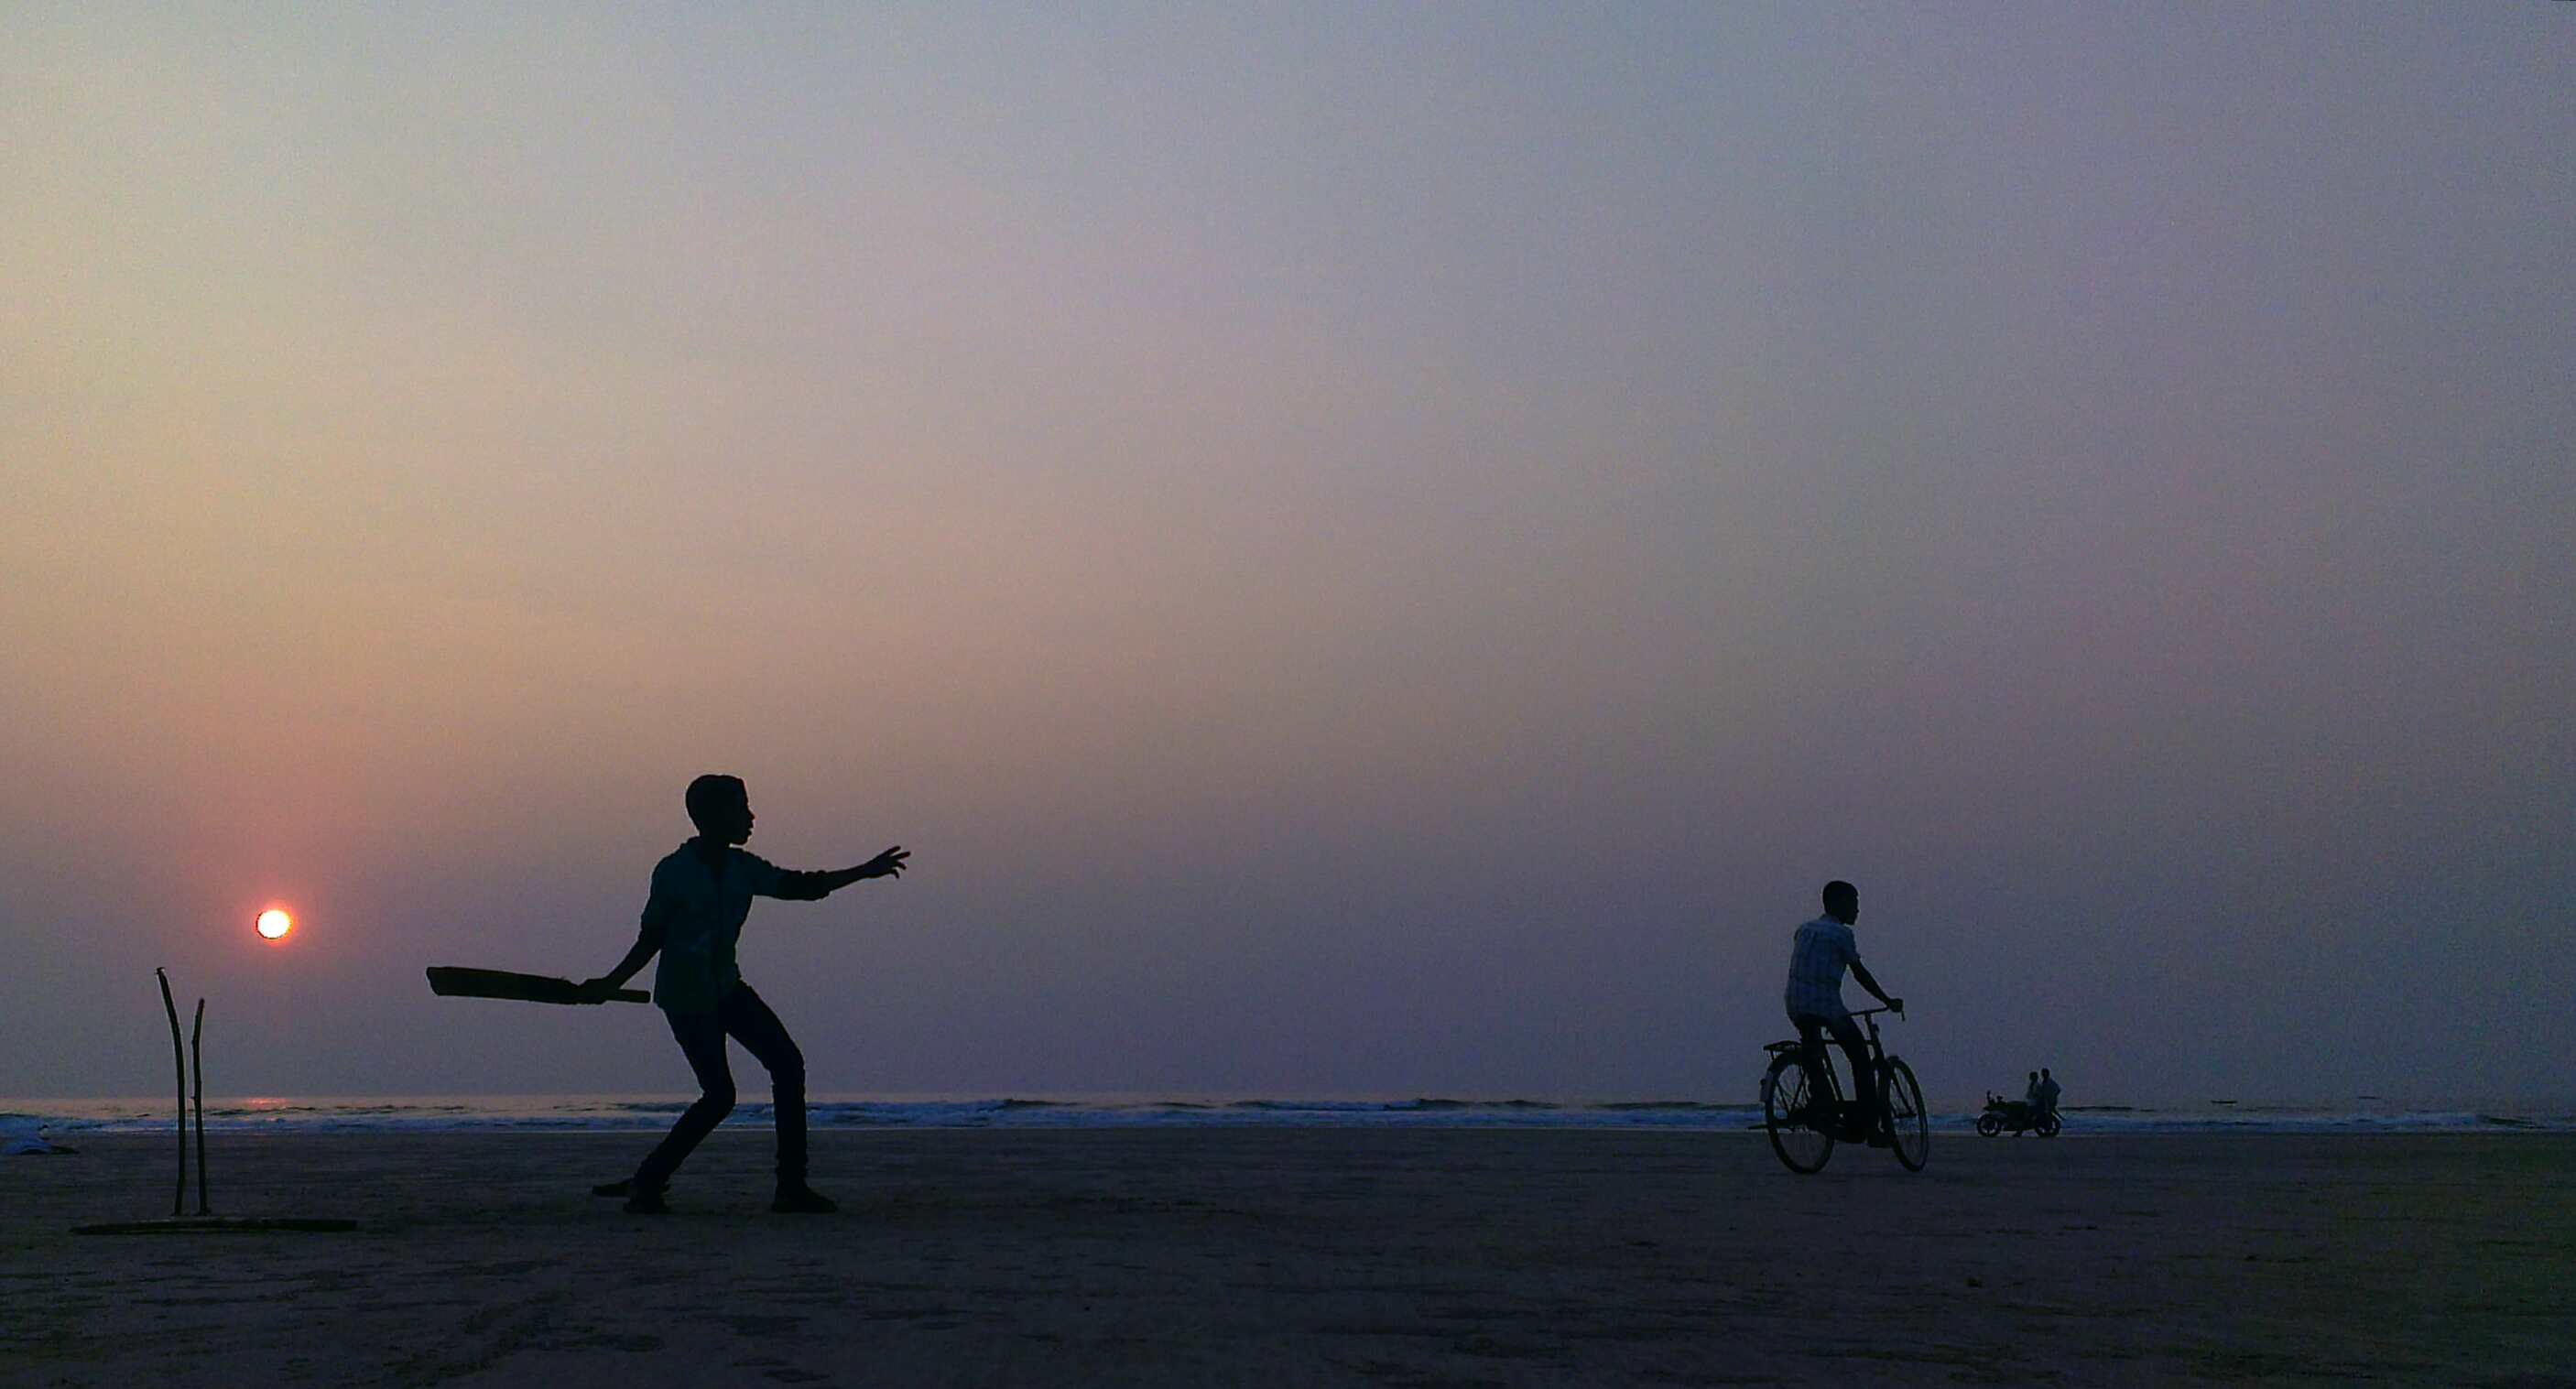 Day 11 playing cricket on the beach at sunset